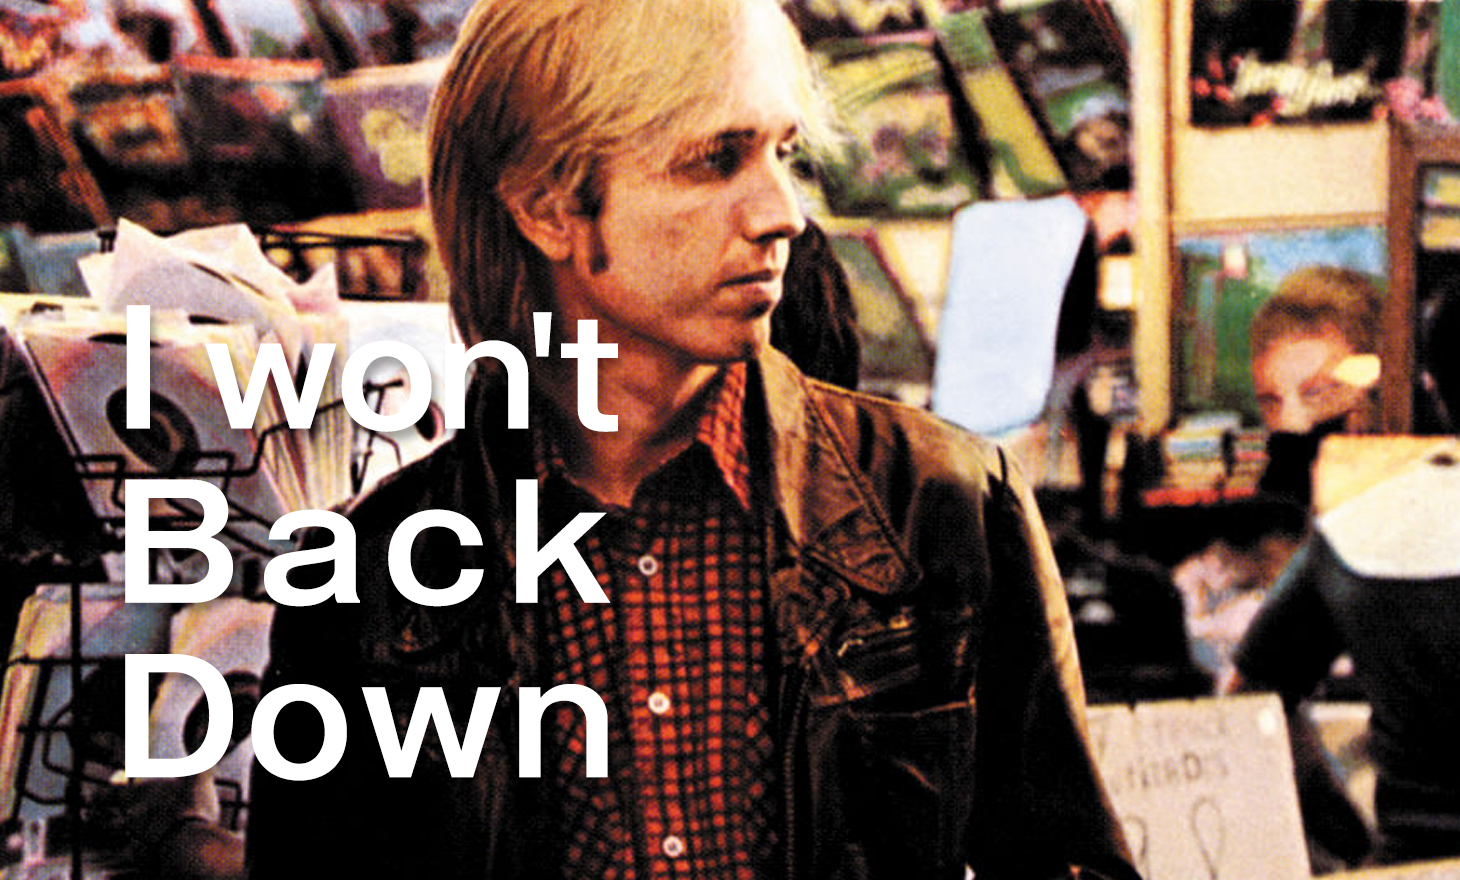 tom petty:i won't back down